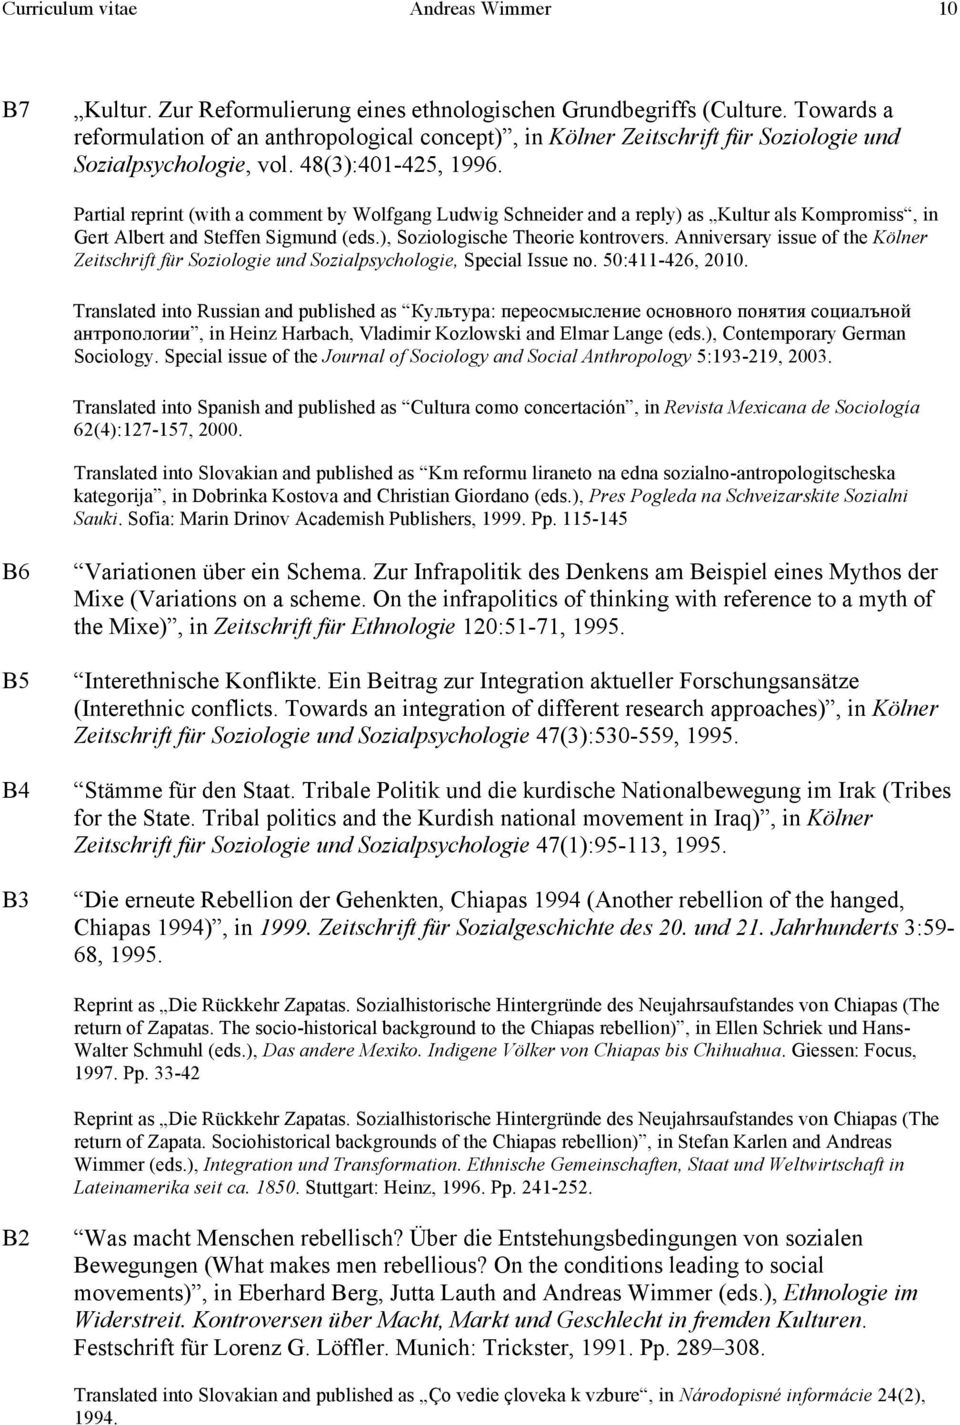 Partial reprint (with a comment by Wolfgang Ludwig Schneider and a reply) as Kultur als Kompromiss, in Gert Albert and Steffen Sigmund (eds.), Soziologische Theorie kontrovers.